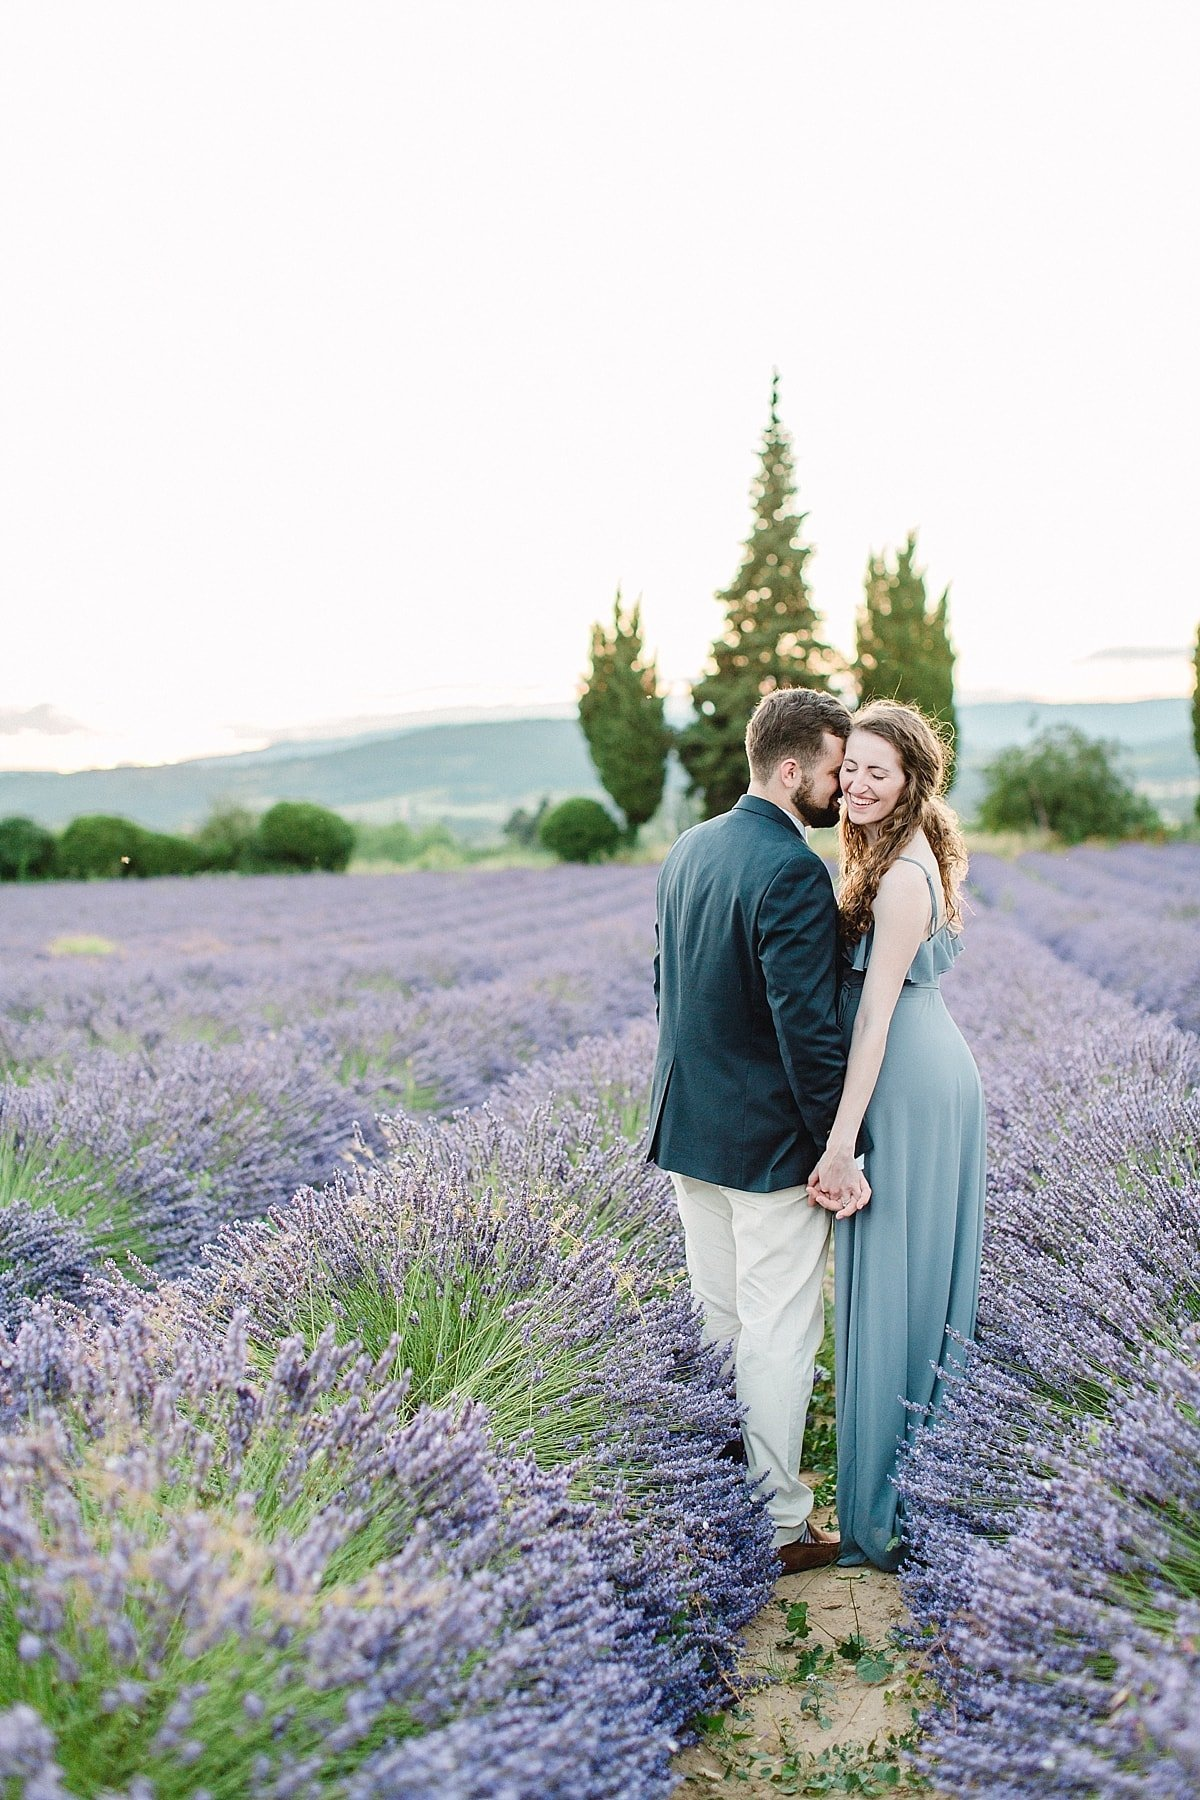 provence-france-lavender-anniversary-session-alicia-yarrish-photography-25